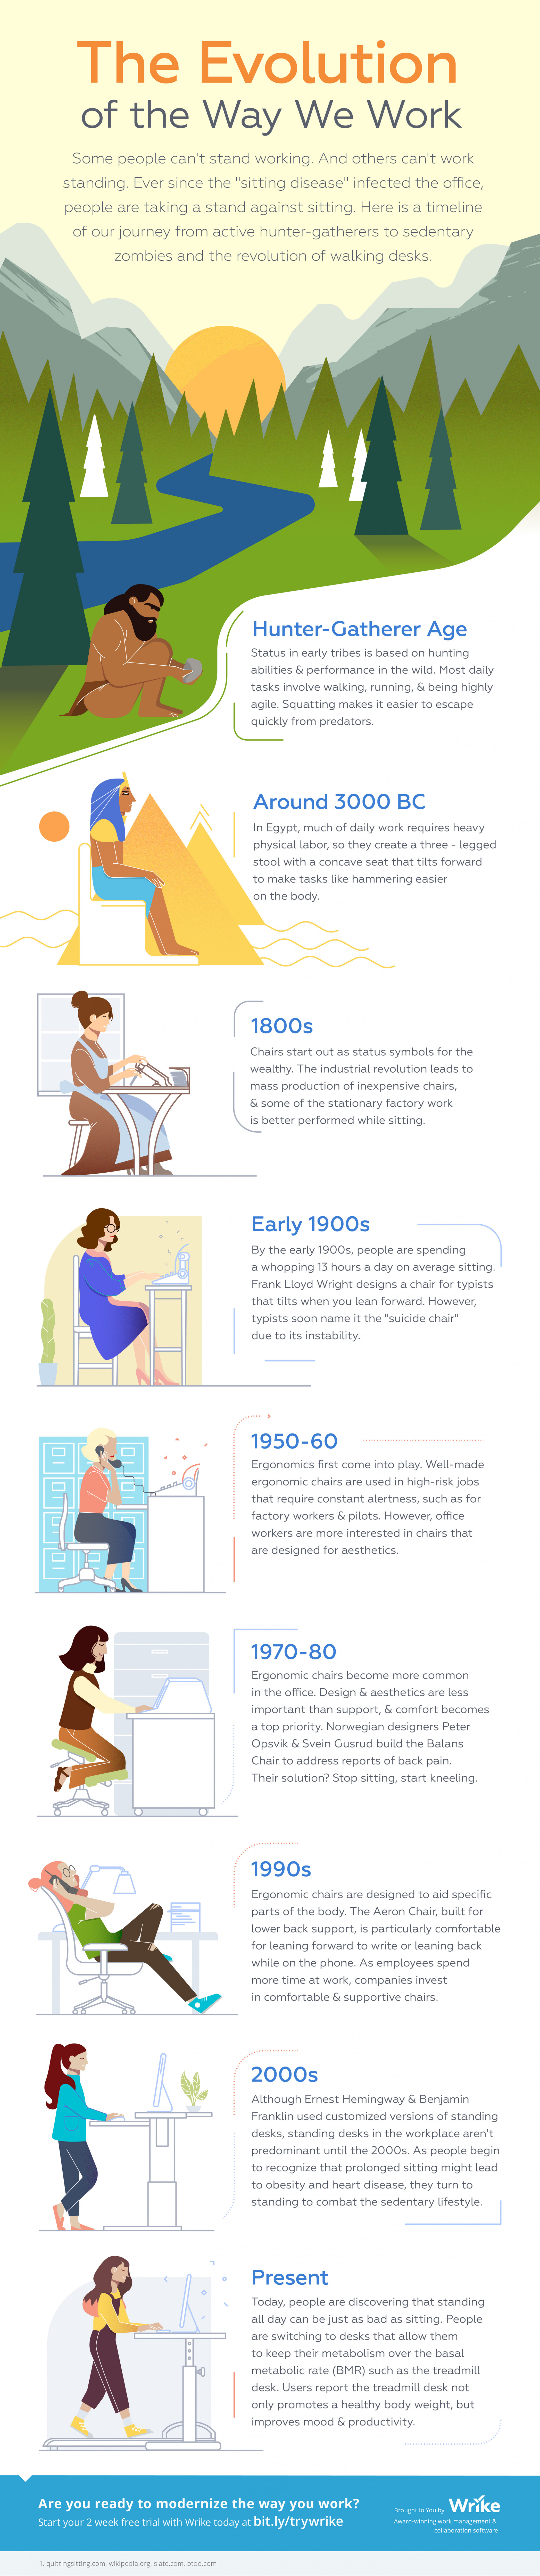 The Evolution of the Way We Work